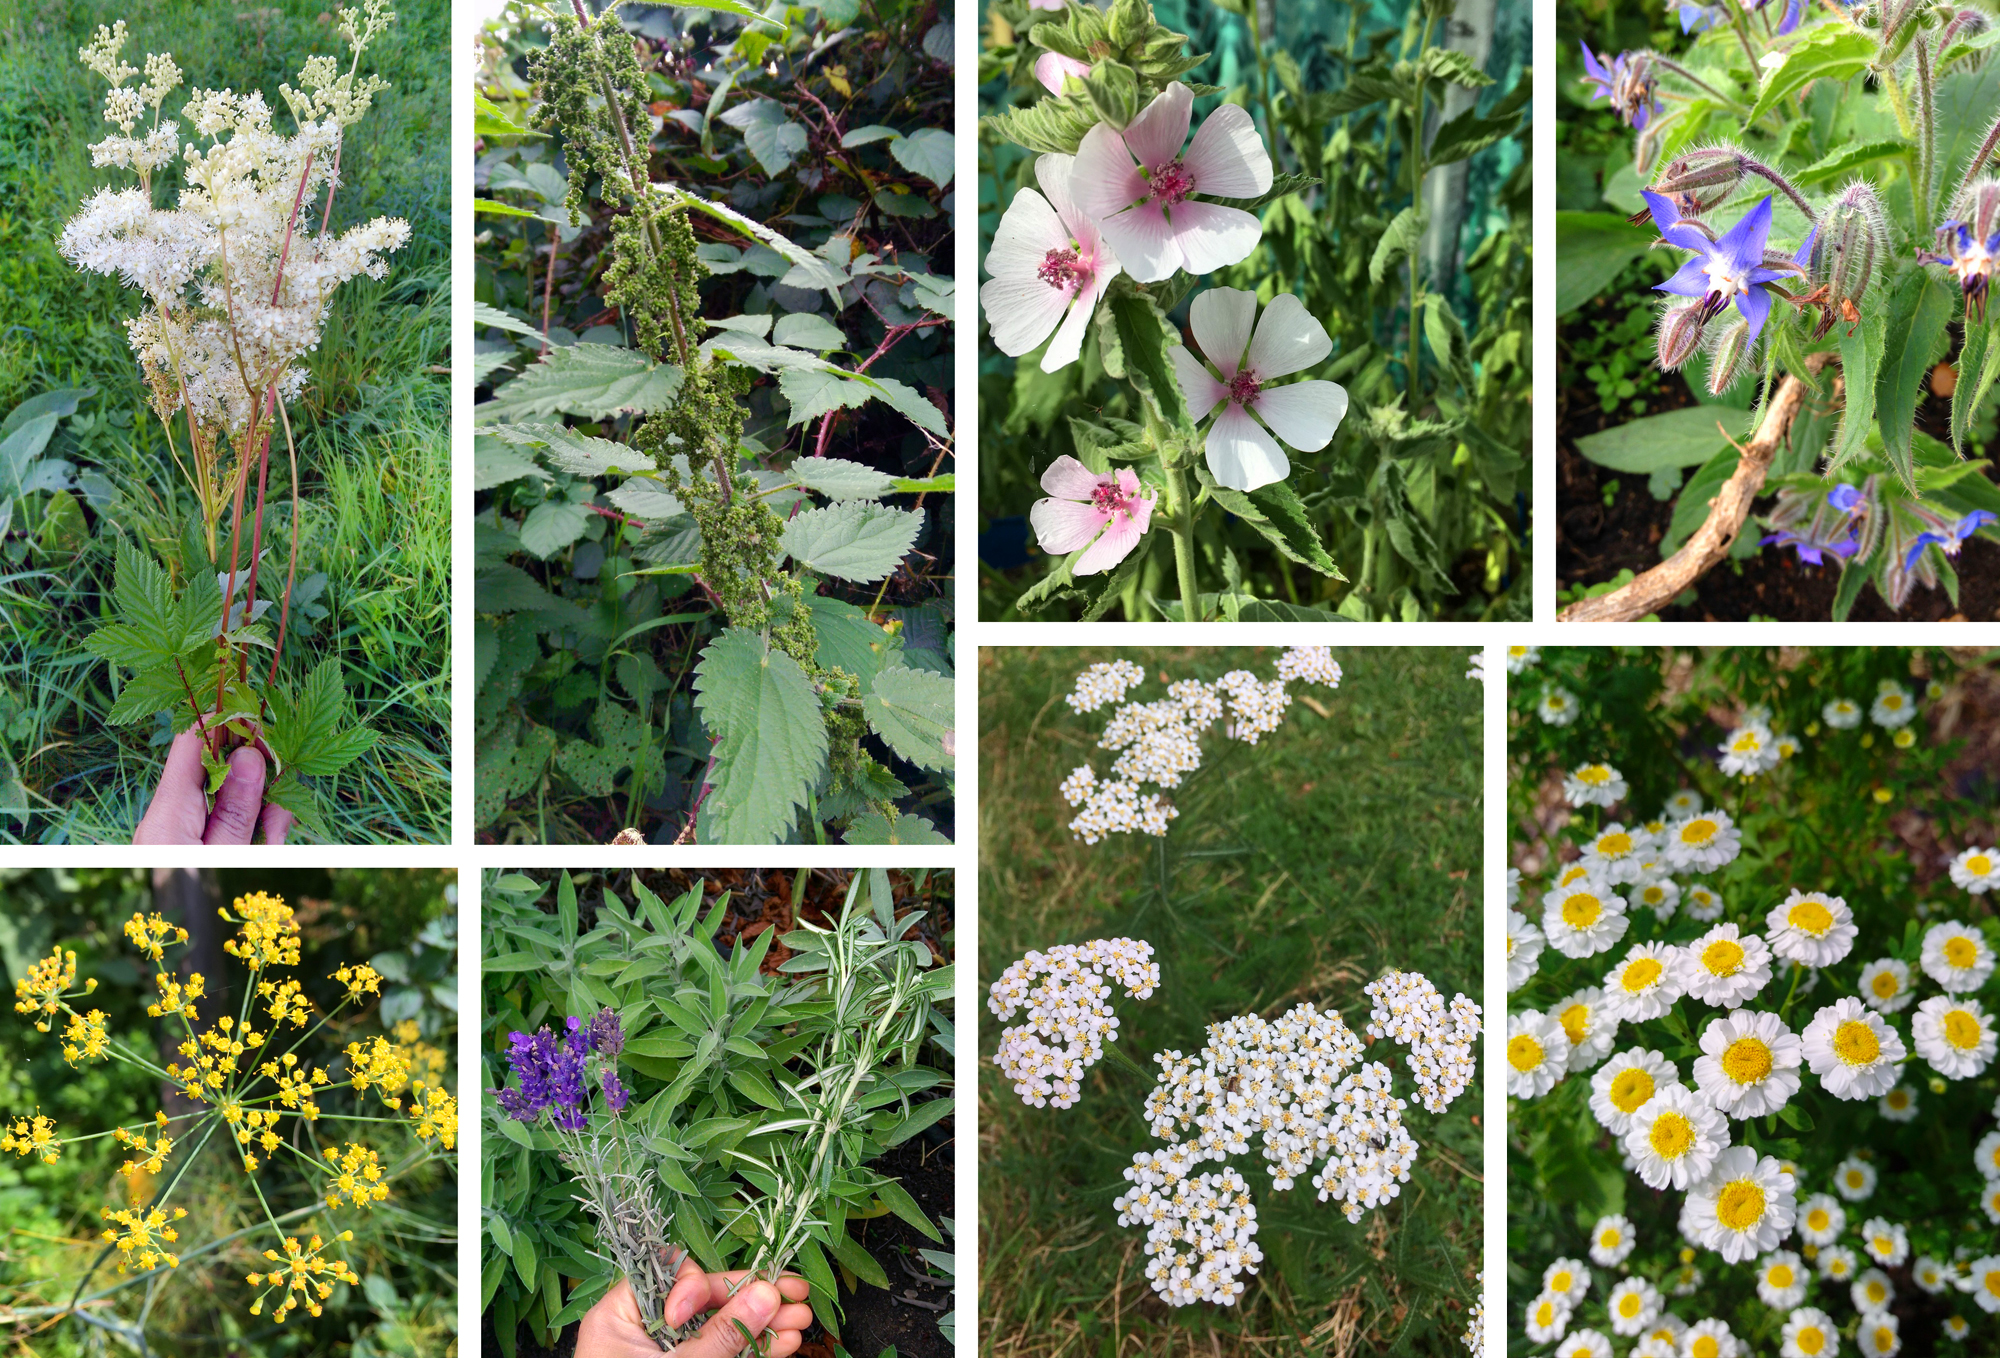 Top row L-R Meadowsweet, Nettle seeds, Marshmallow, Borage. Bottom row L-R Fennel, Lavender & Sage & Rosemary, Yarrow, Feverfew